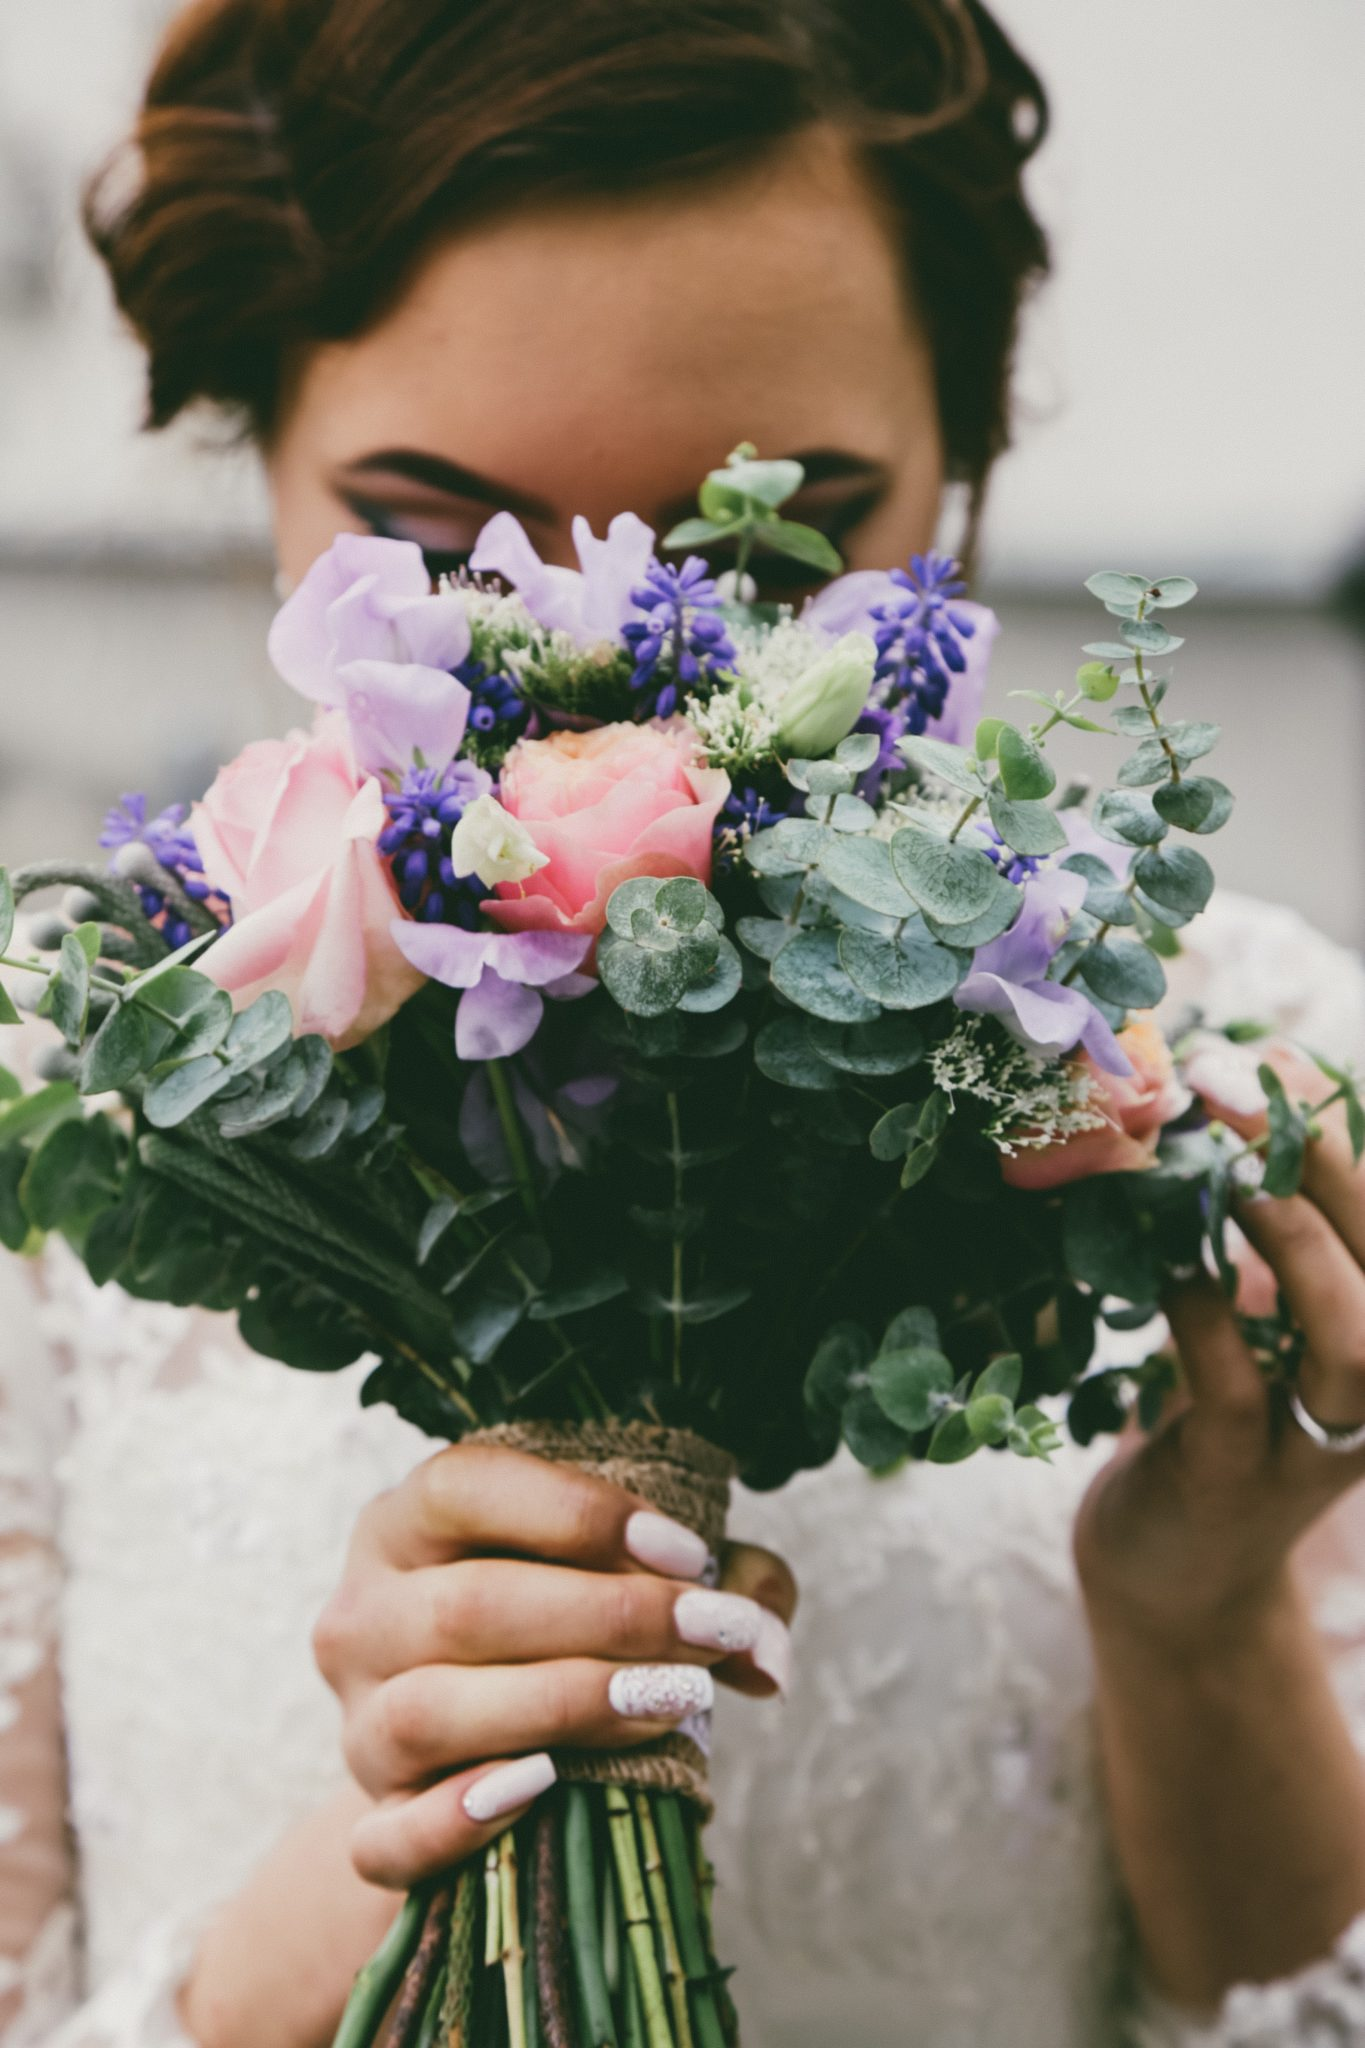 How To Make Beautiful Flower Arrangements This Spring Weavers Orchard